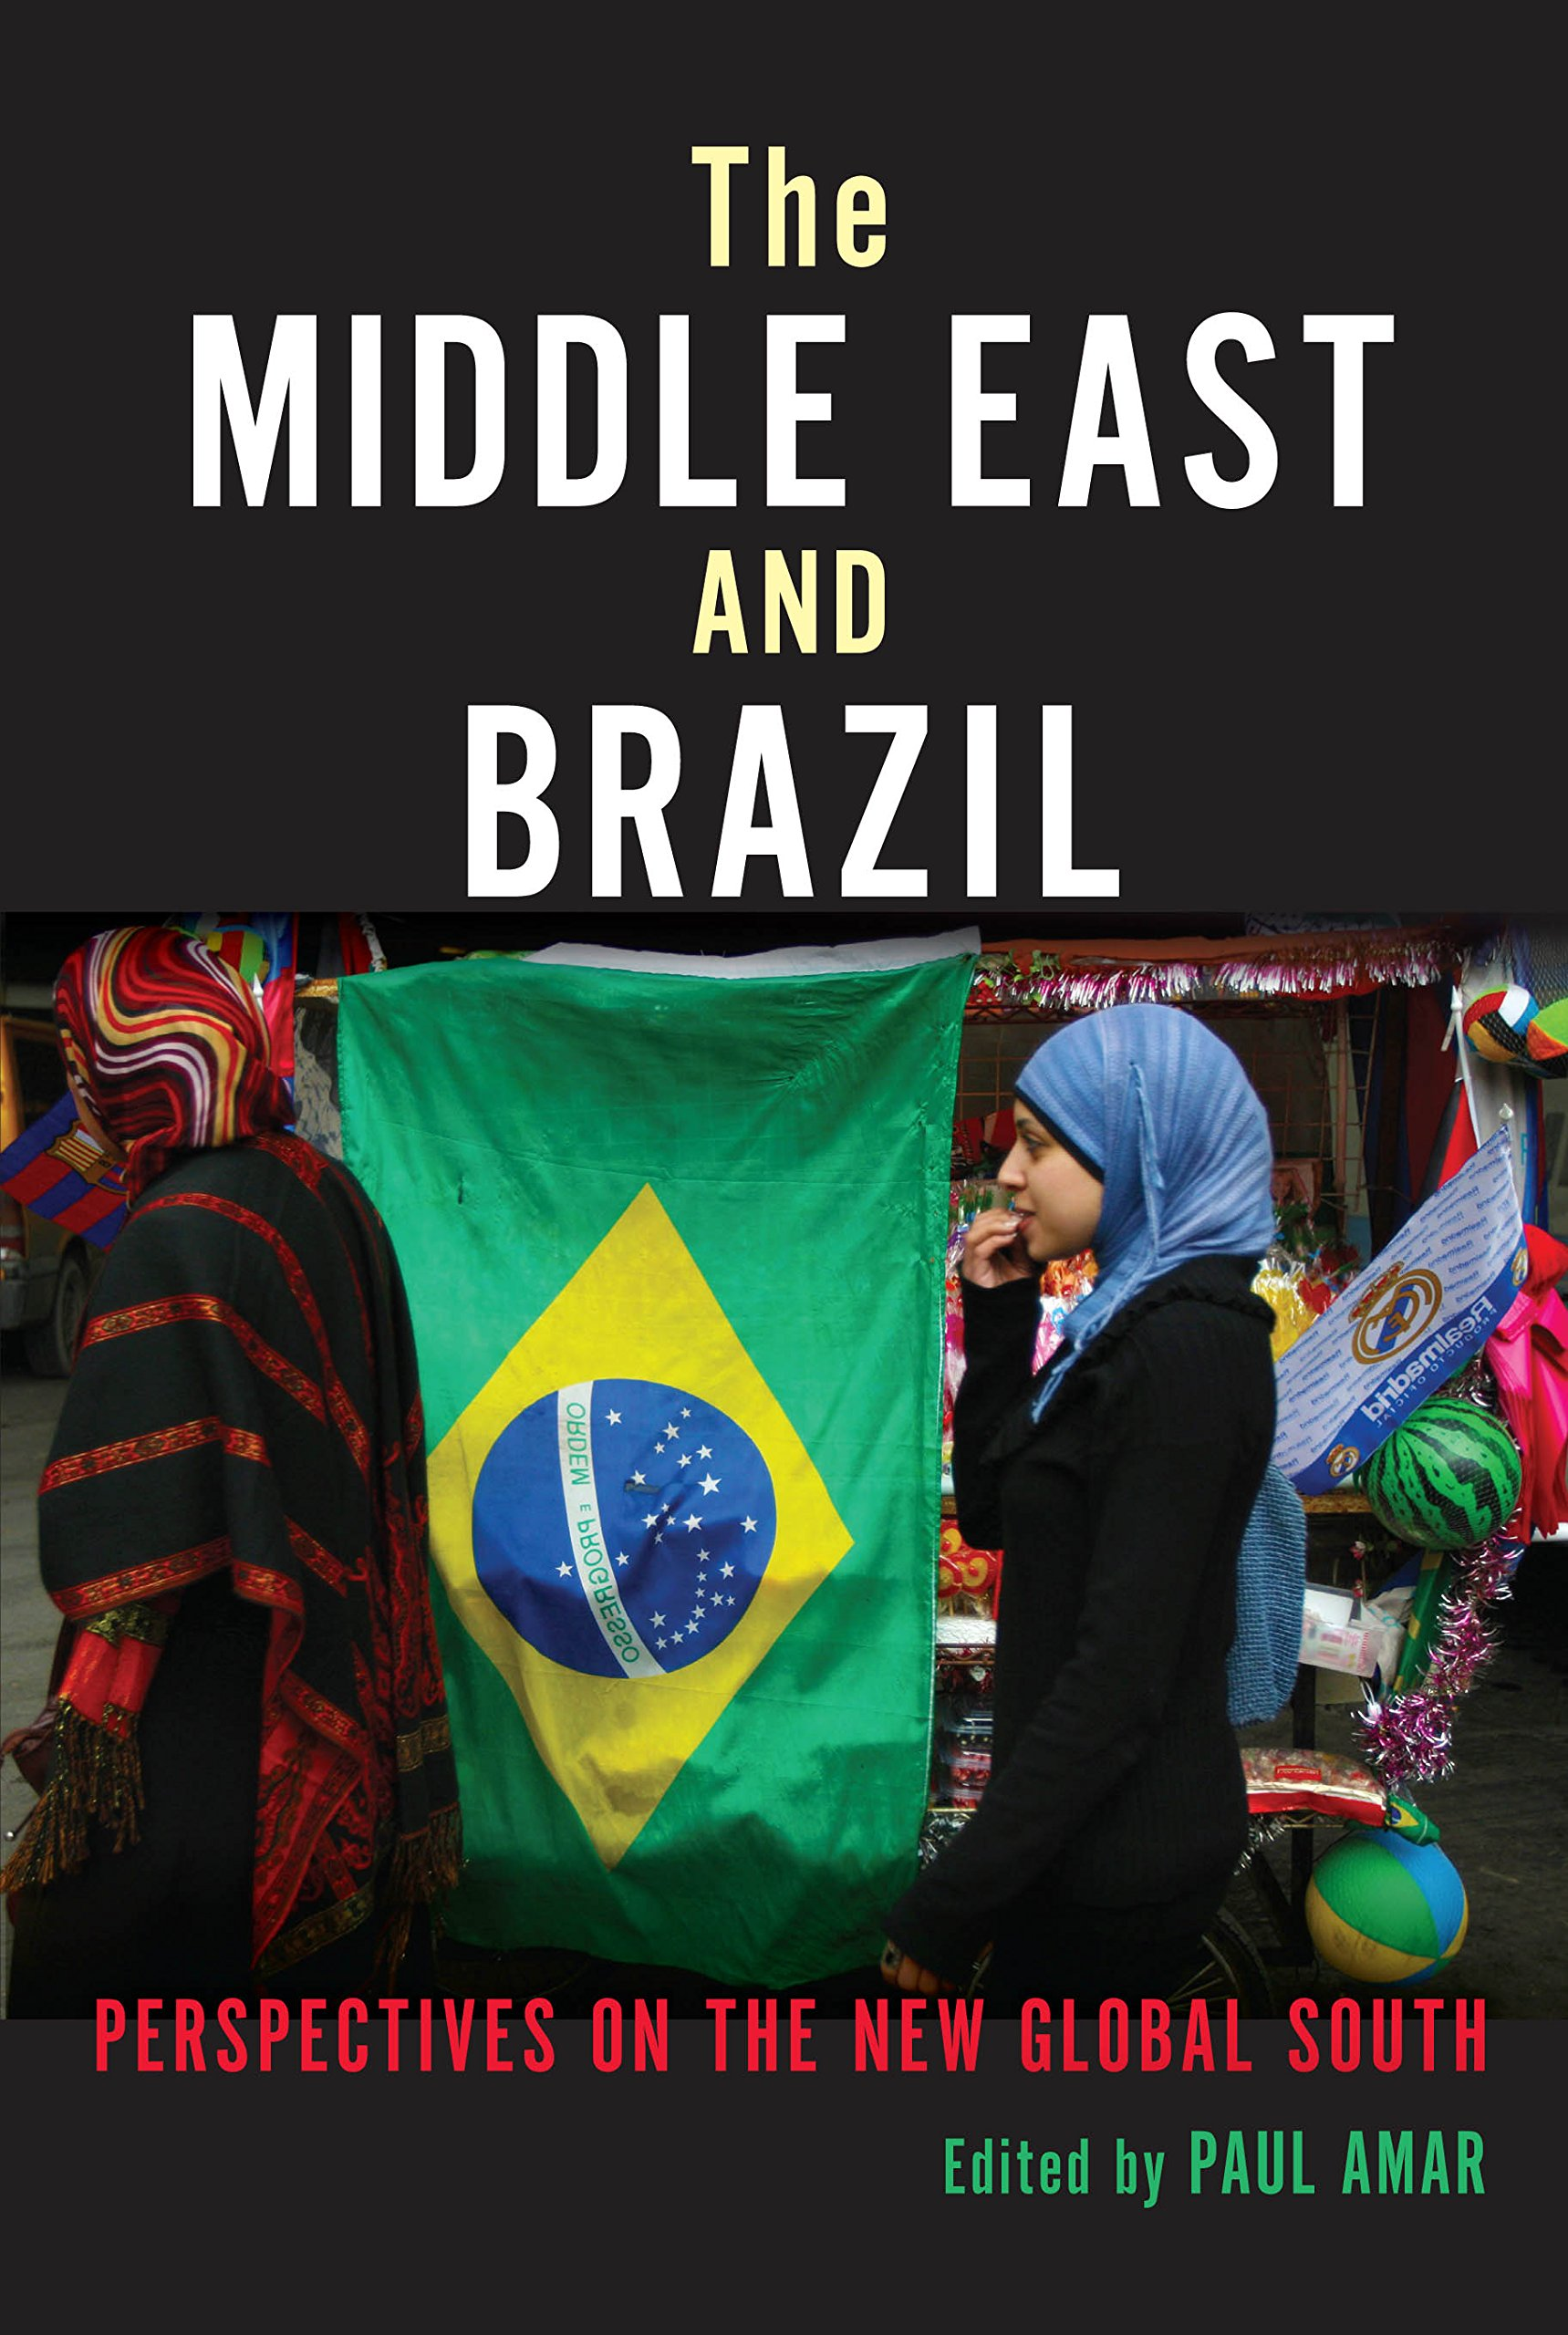 Download The Middle East and Brazil: Perspectives on the New Global South (Public Cultures of the Middle East and North Africa) ebook